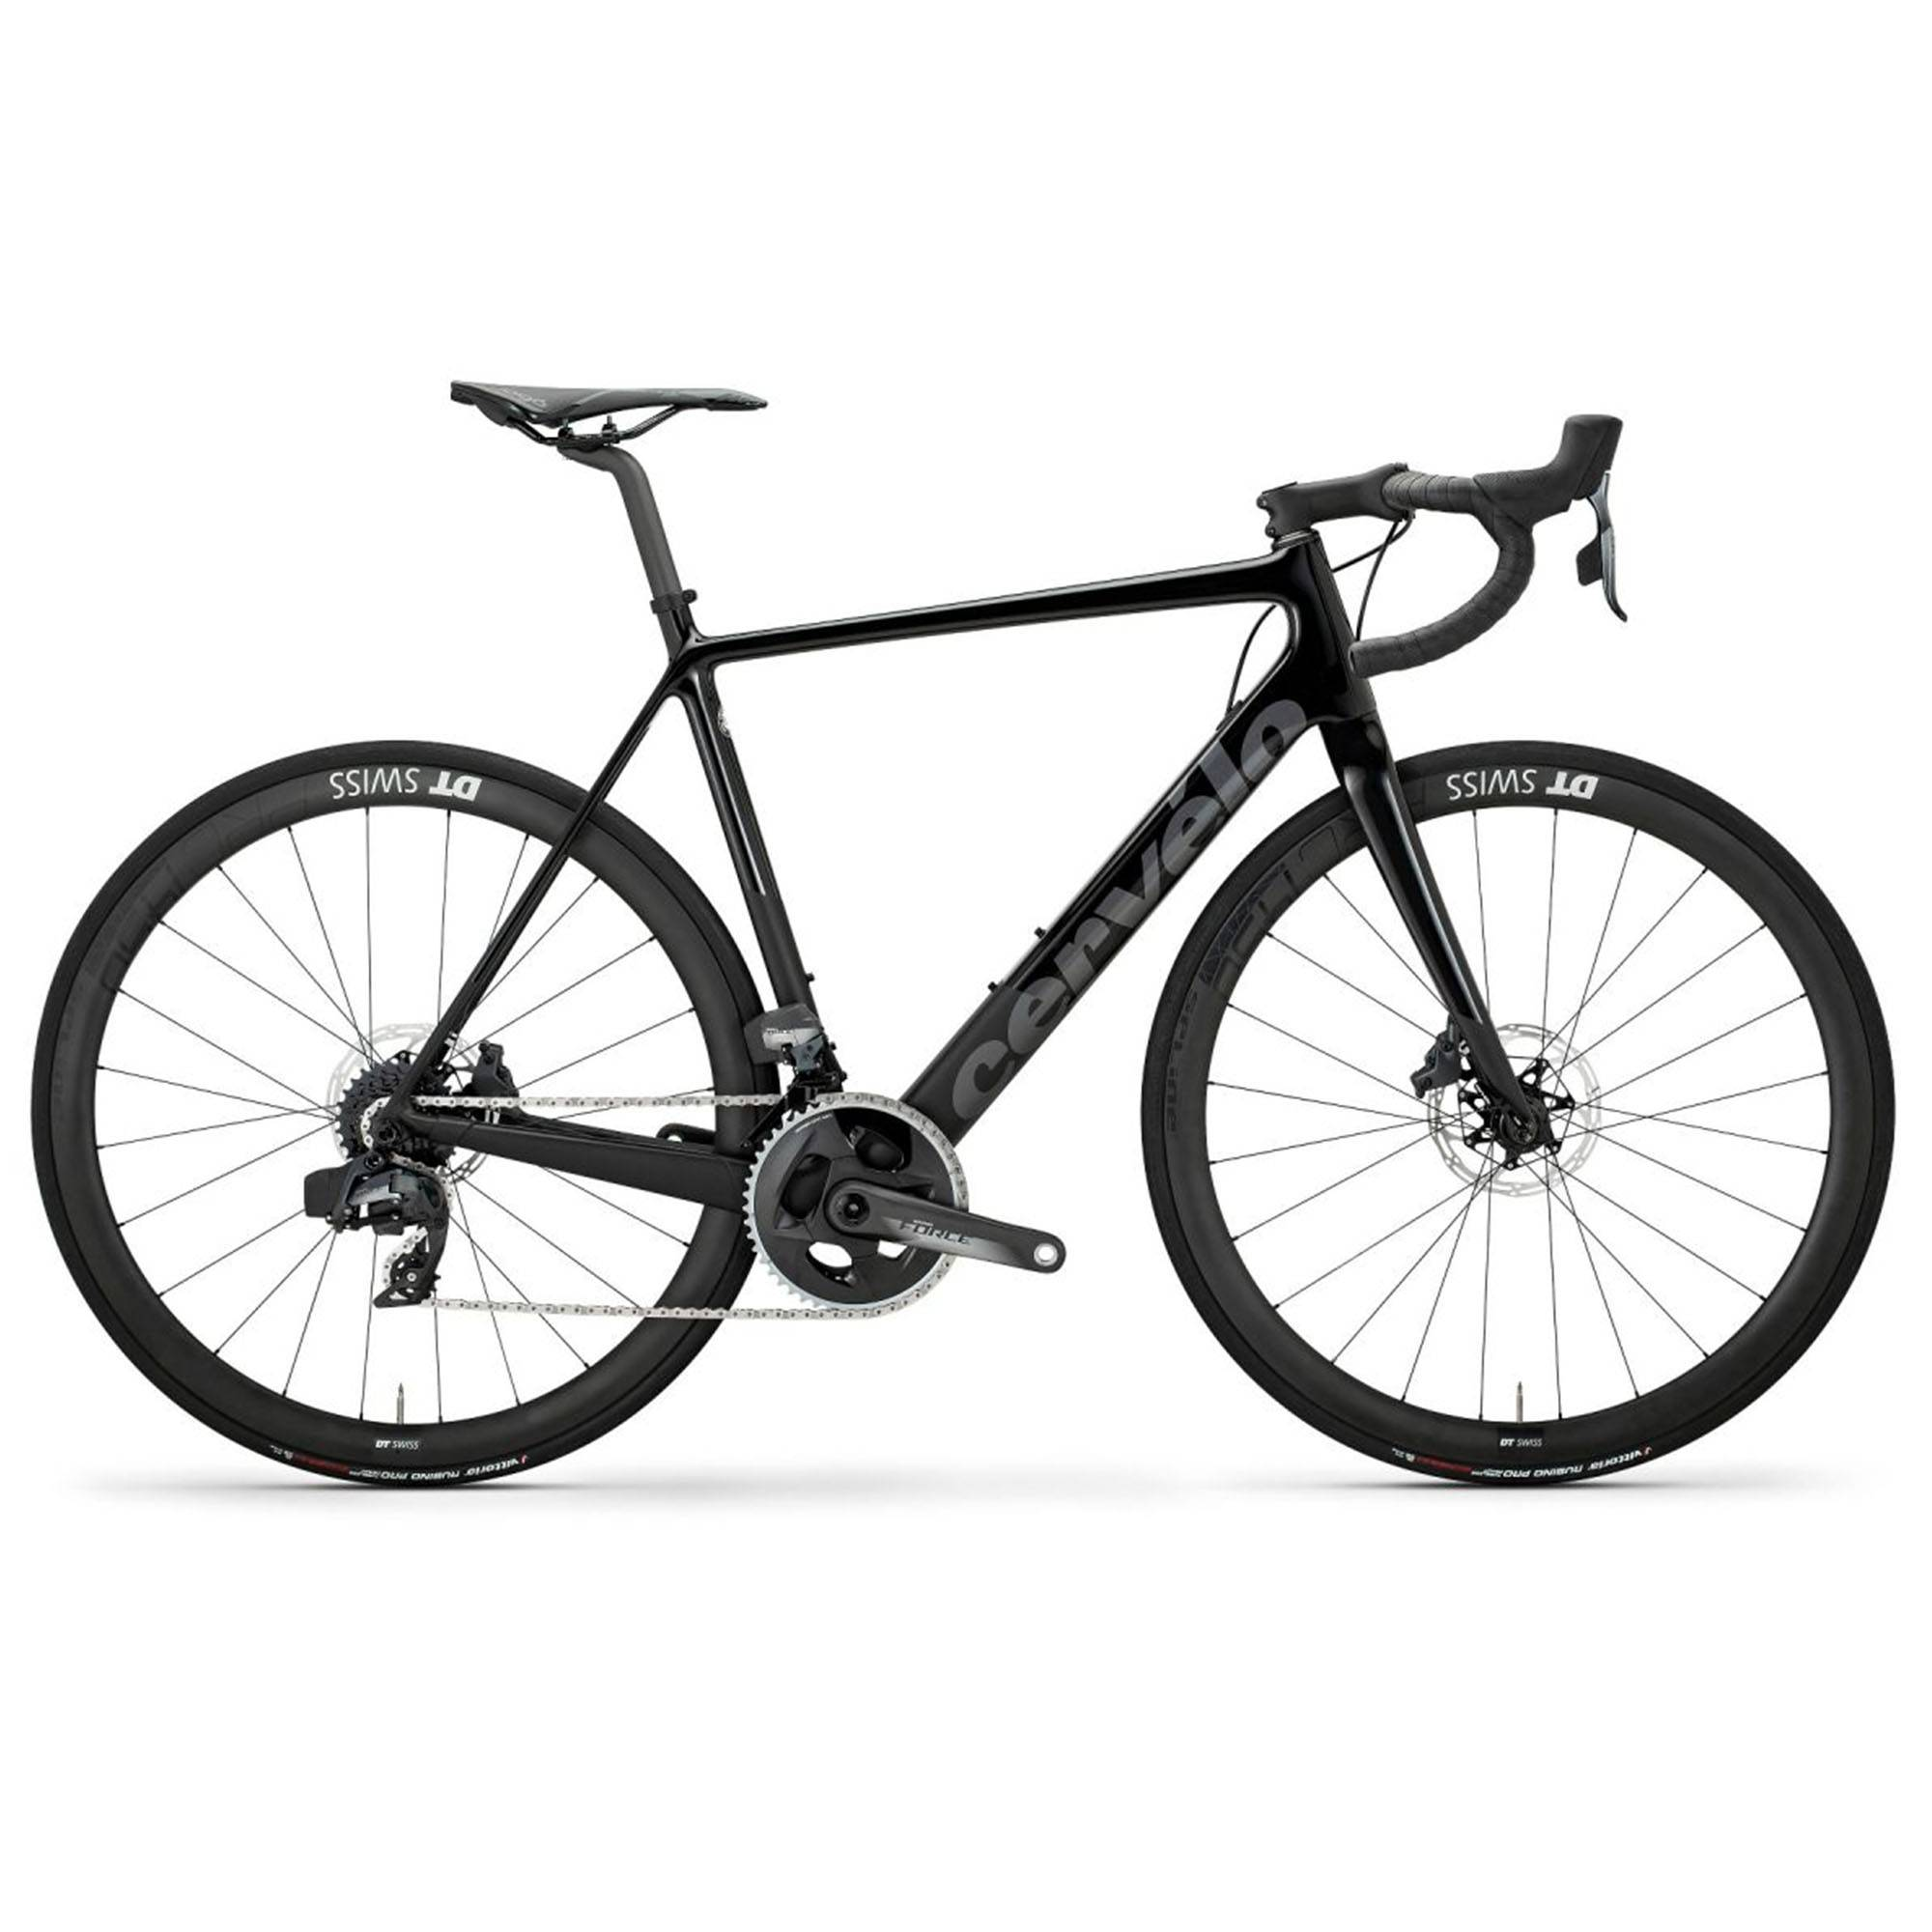 Cervelo Men's R-Series Force AXS Classic Road Bike '20  - Black/Dark Grey - Size: 56